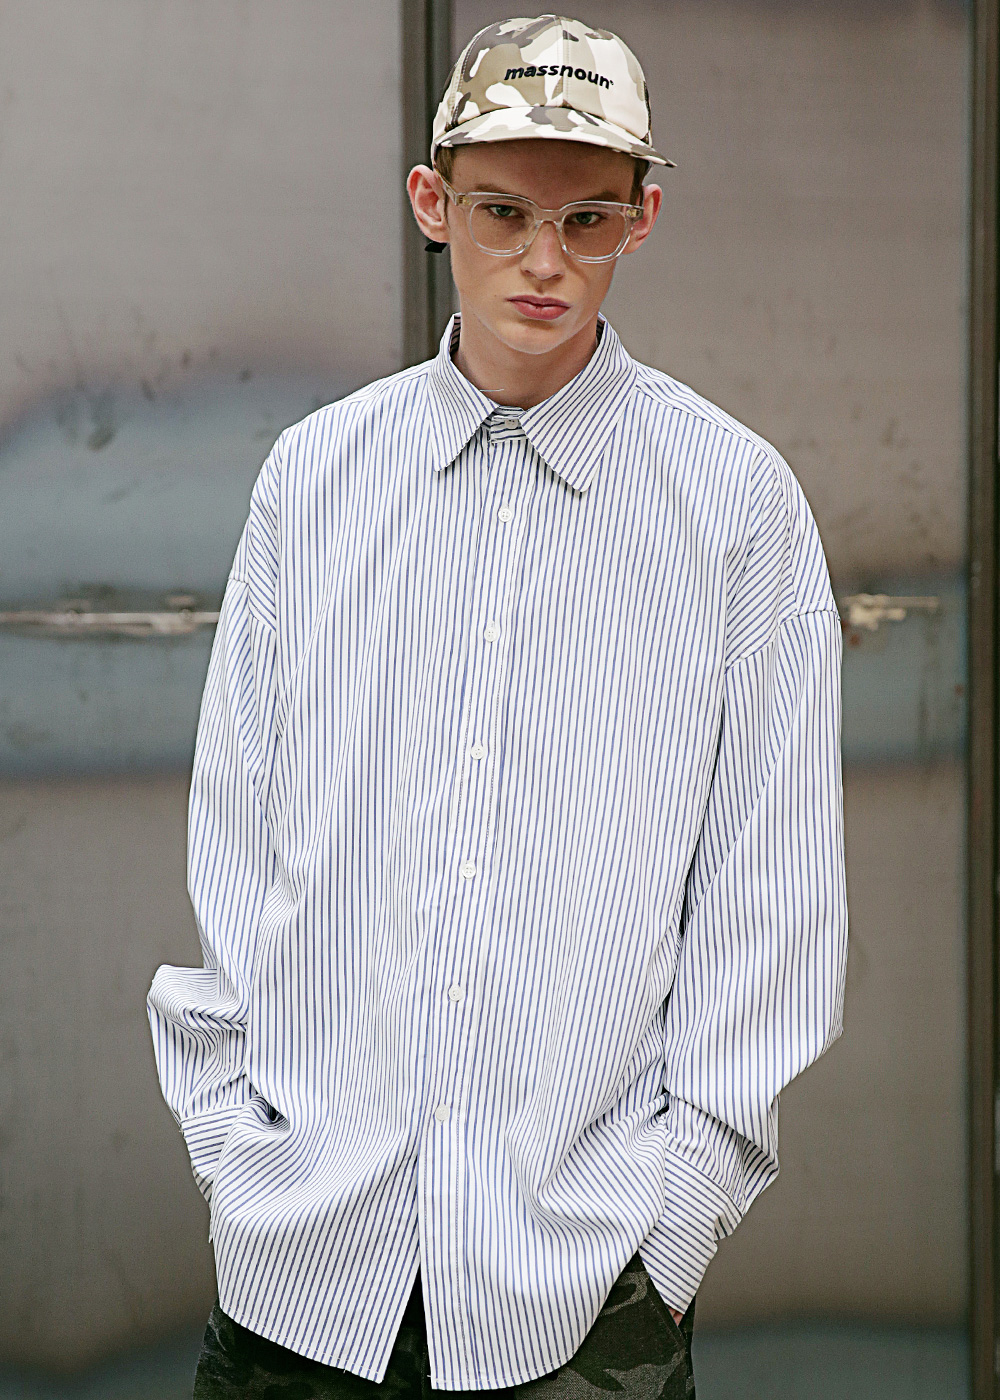 MS STRIPE OVER-FIT SHIRTS MSEST004-NV